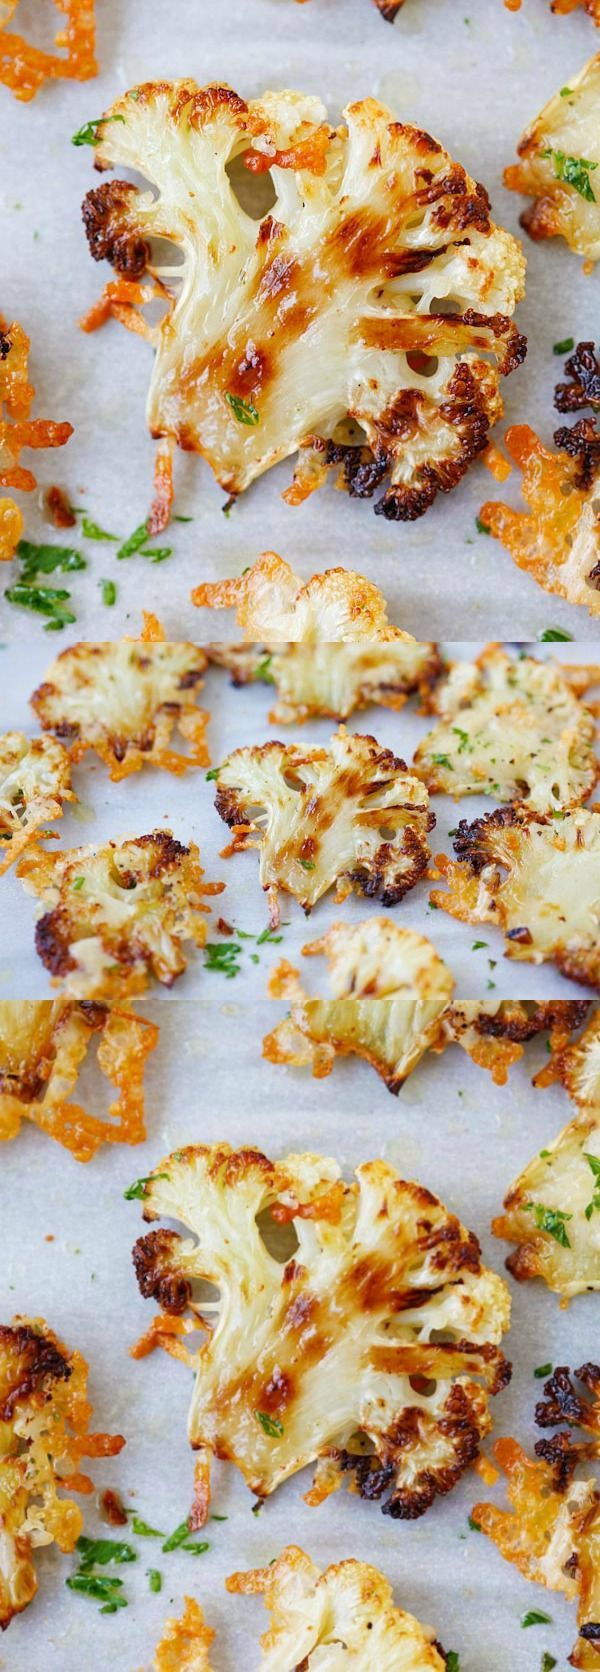 Parmesan Roasted Cauliflower – best cauliflower ever, baked in oven with butter, olive oil and Parmesan cheese. A perfect side dish   http://rasamalaysia.com